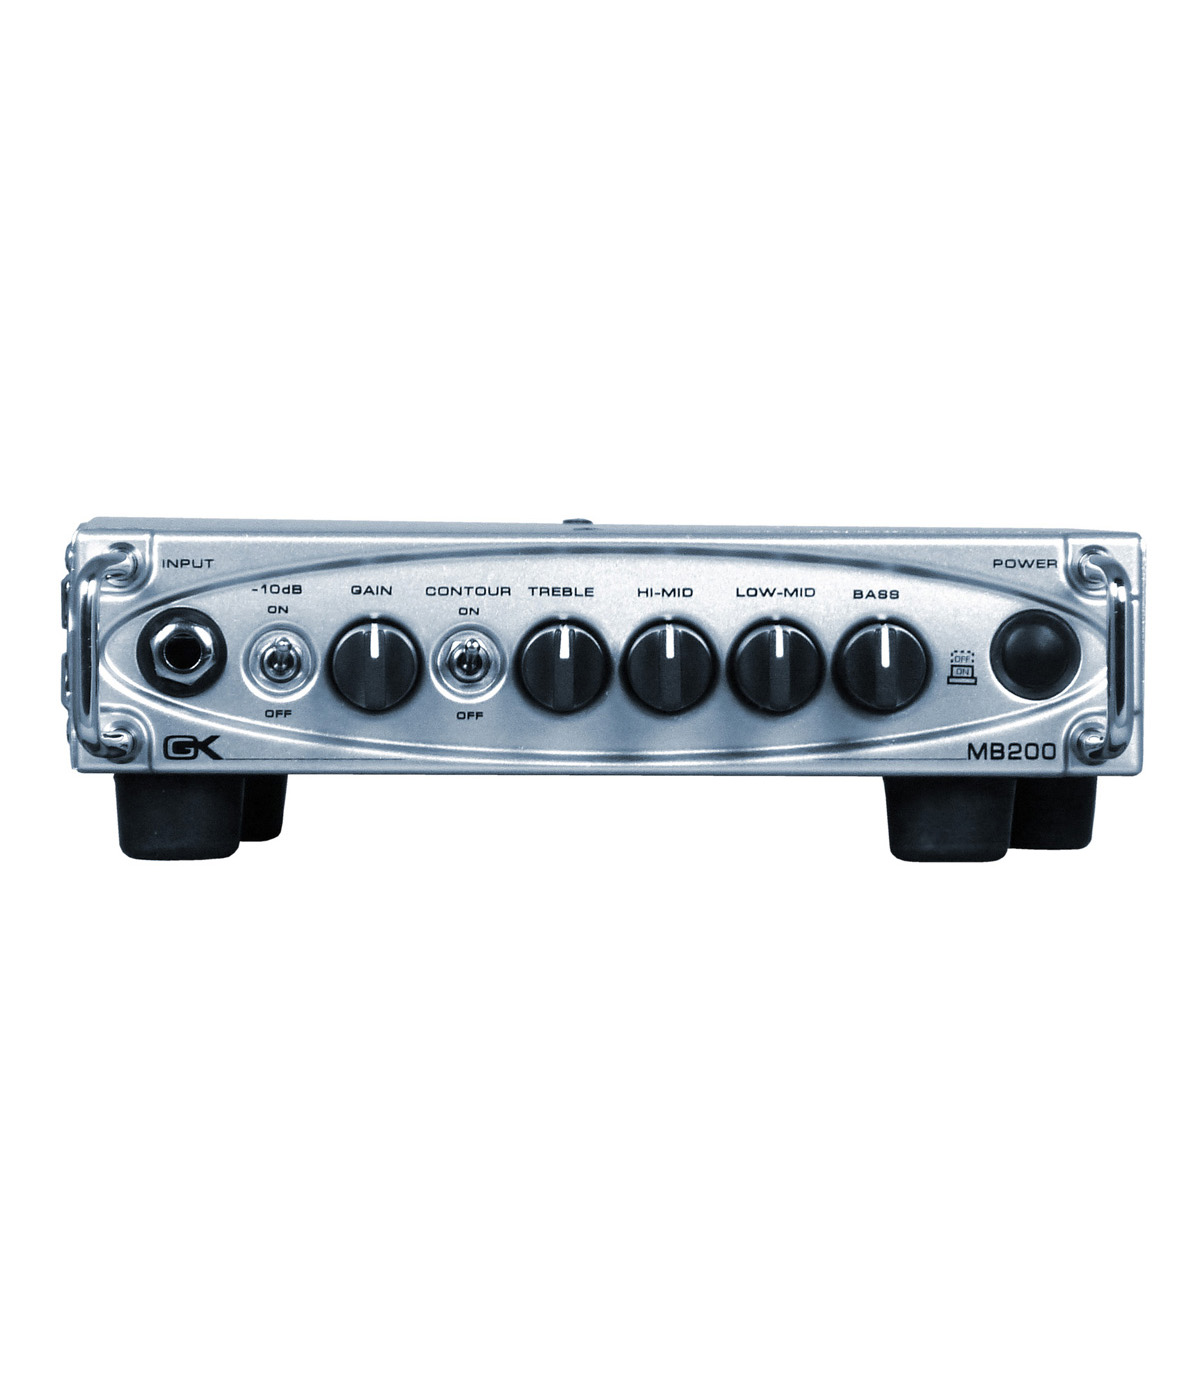 Buy gk MB 200 Watt Ultra Light Solid State Bass Head Melody House